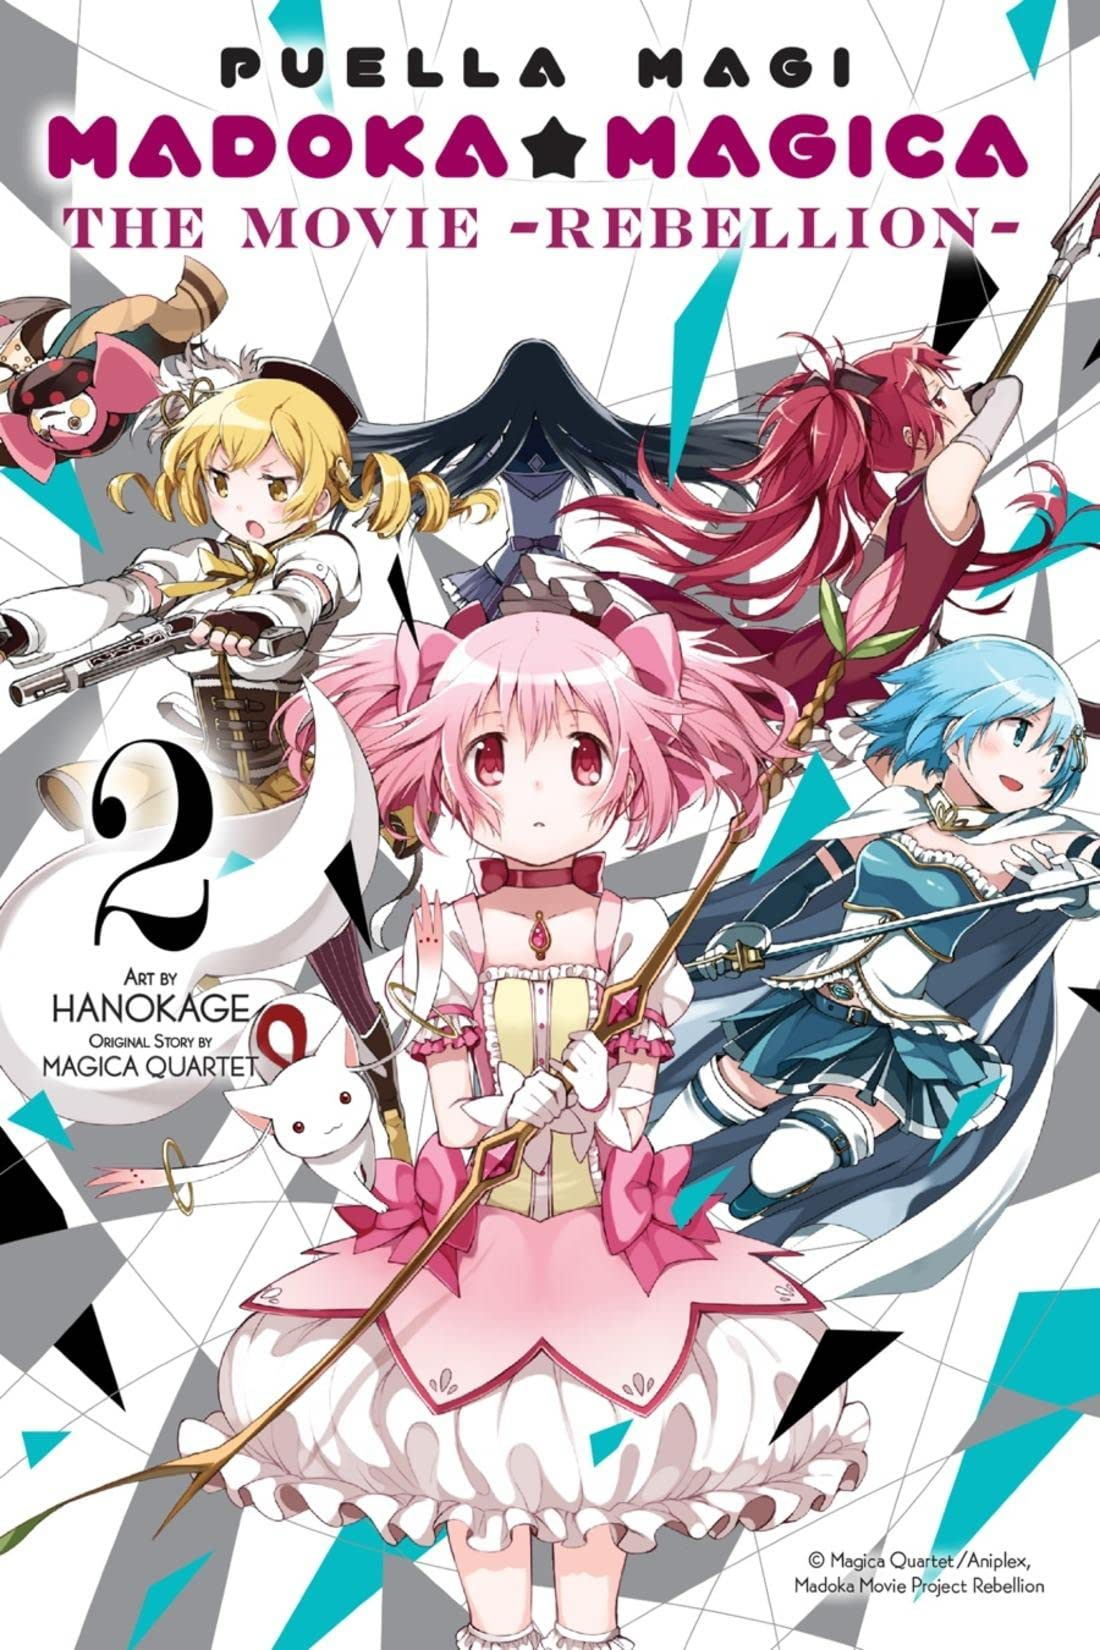 Puella Magi Madoka Magica Vol. 2: The Movie -Rebellion-